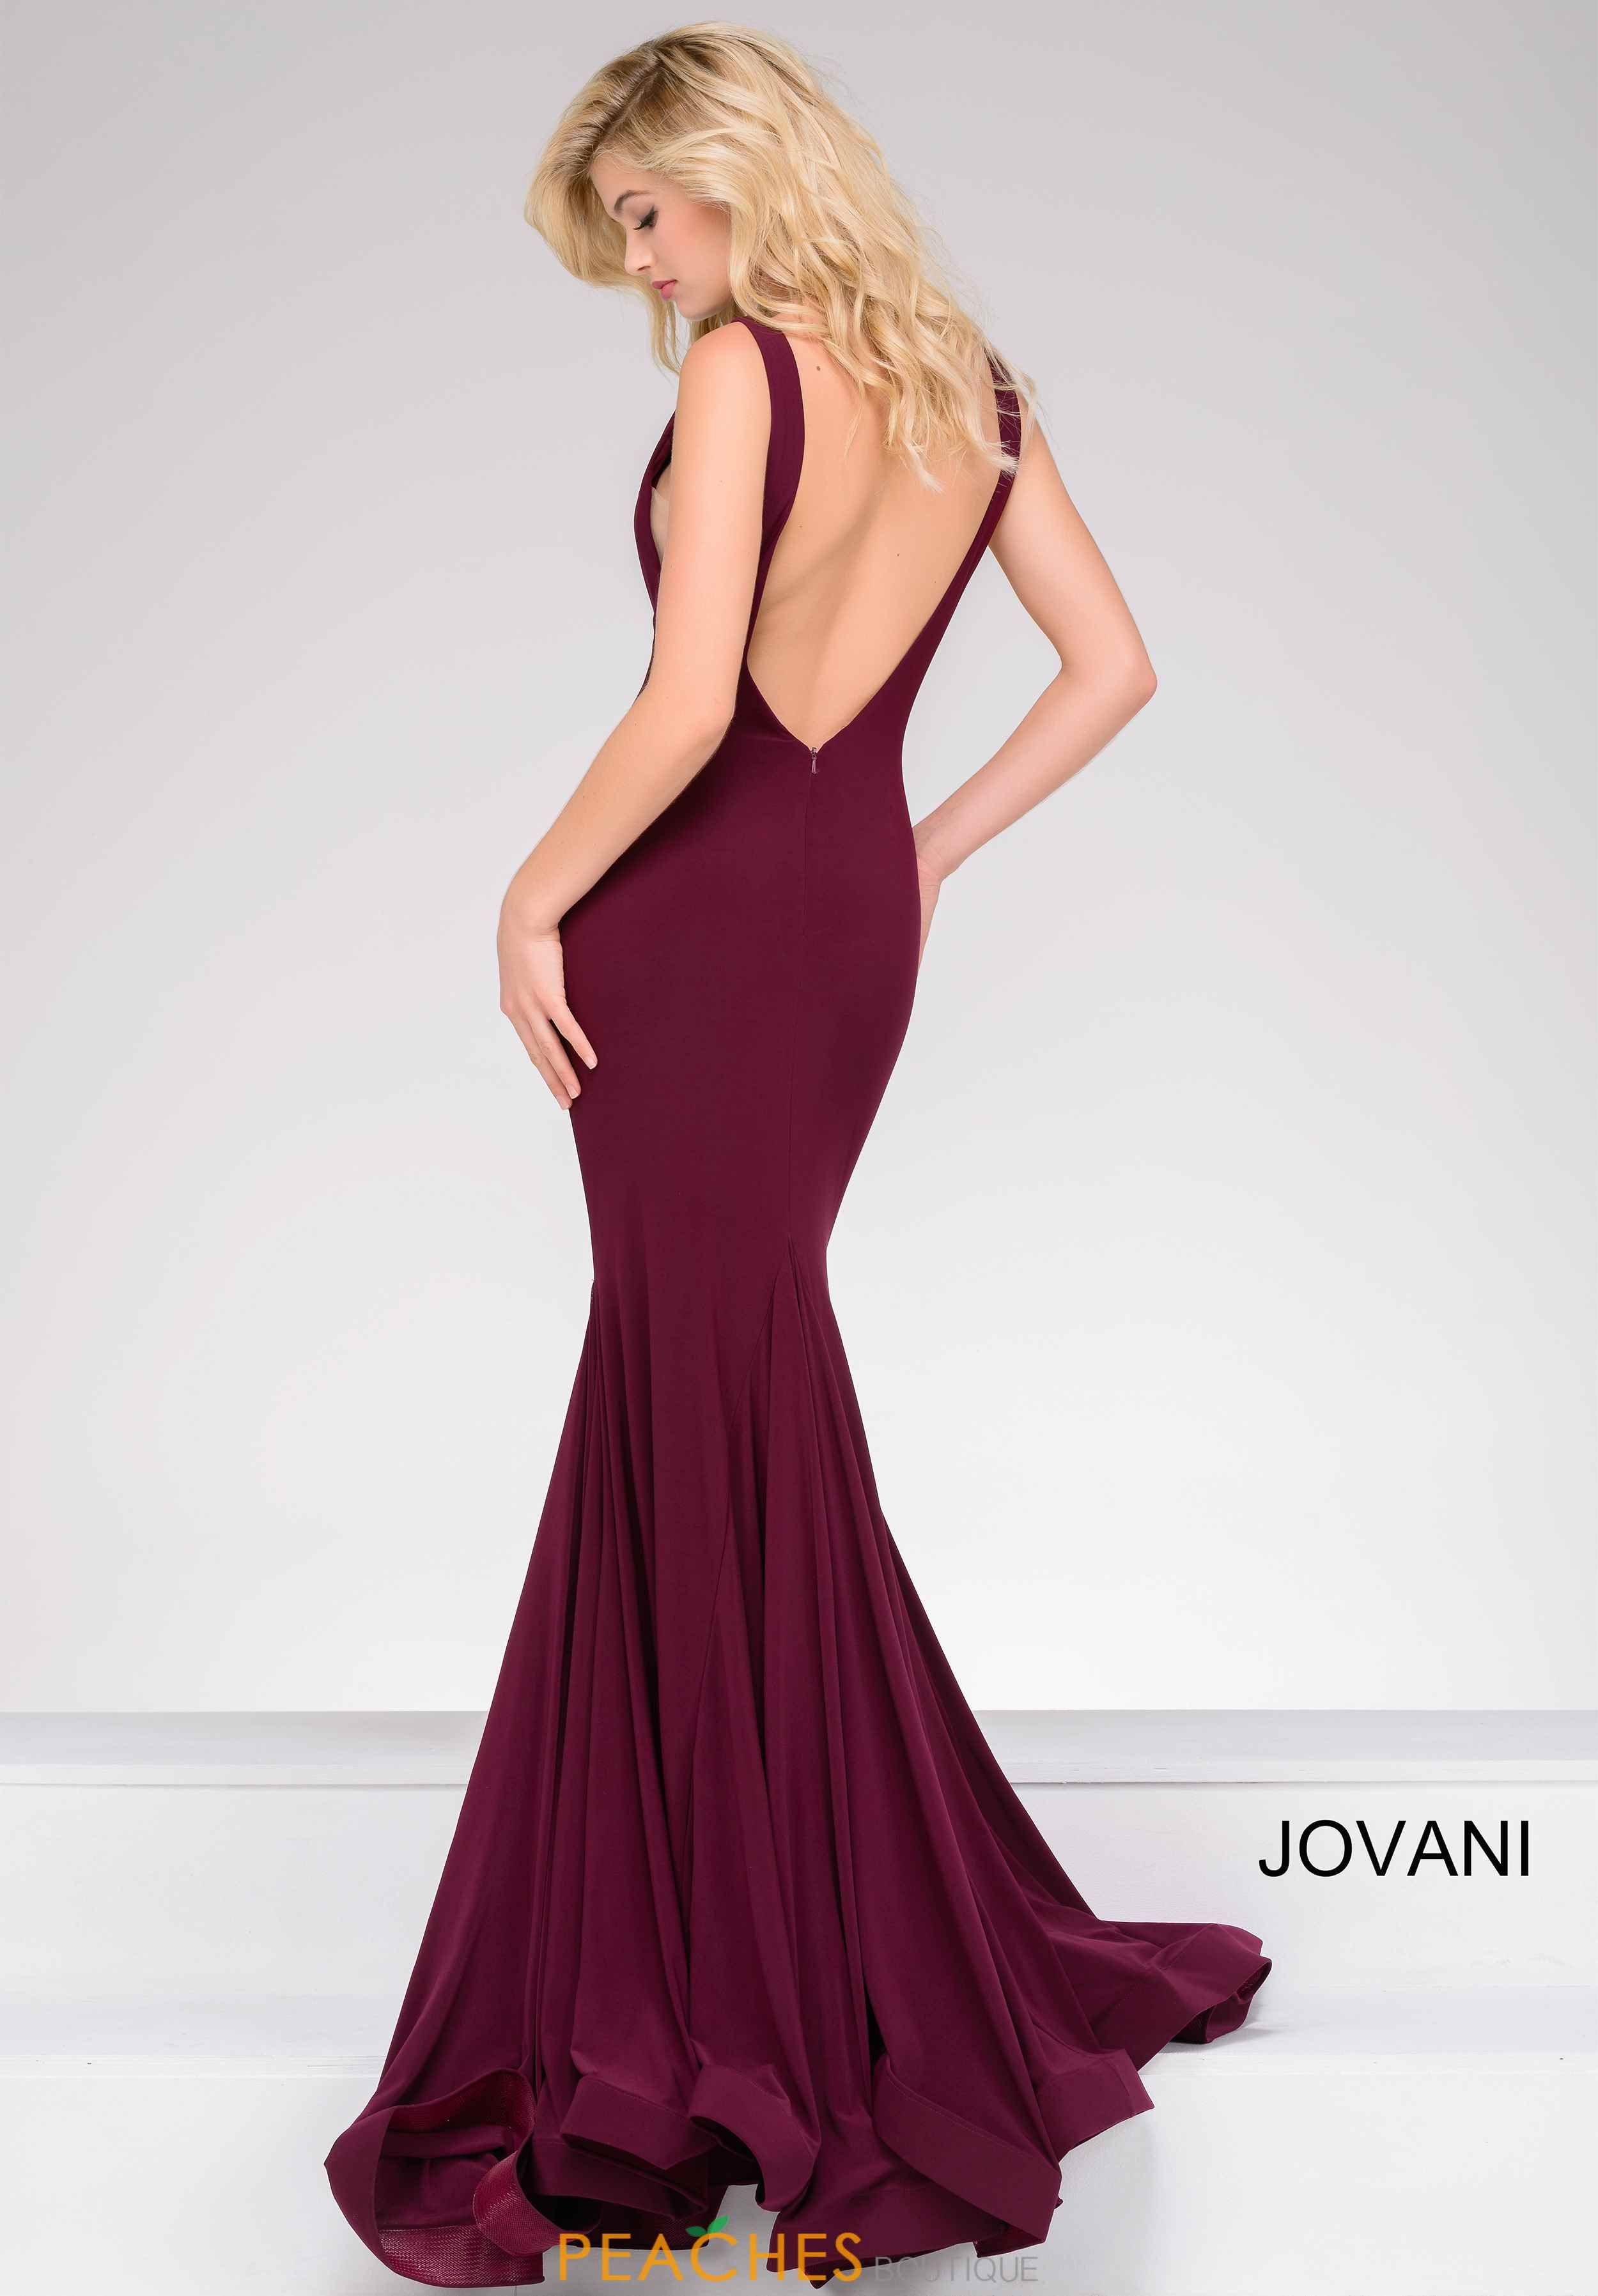 Jovani high neckline fitted dress special occasions